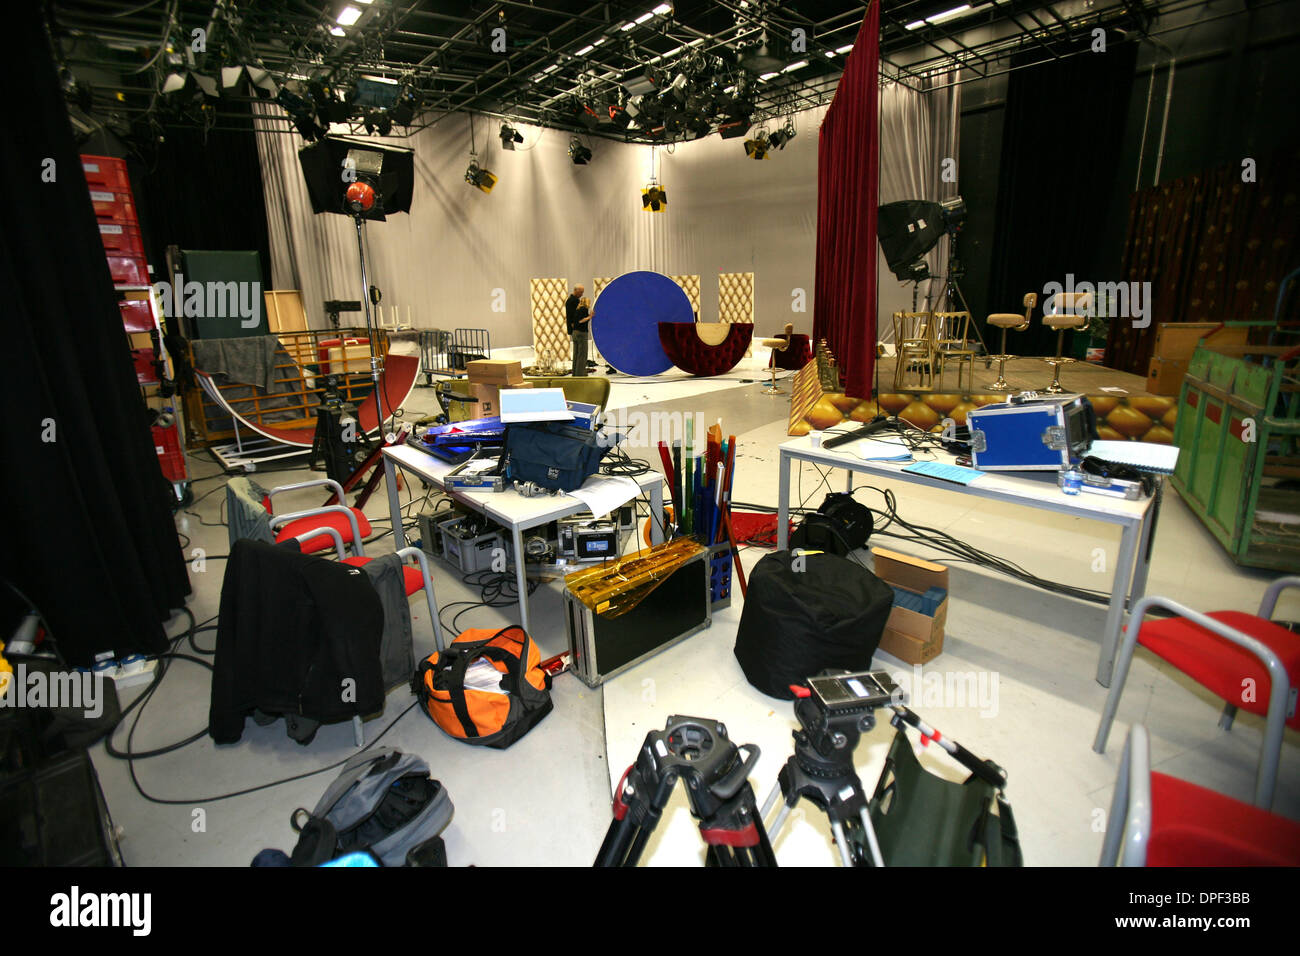 Attributes for building a set for the Television programs and films in the Netherlands - Stock Image